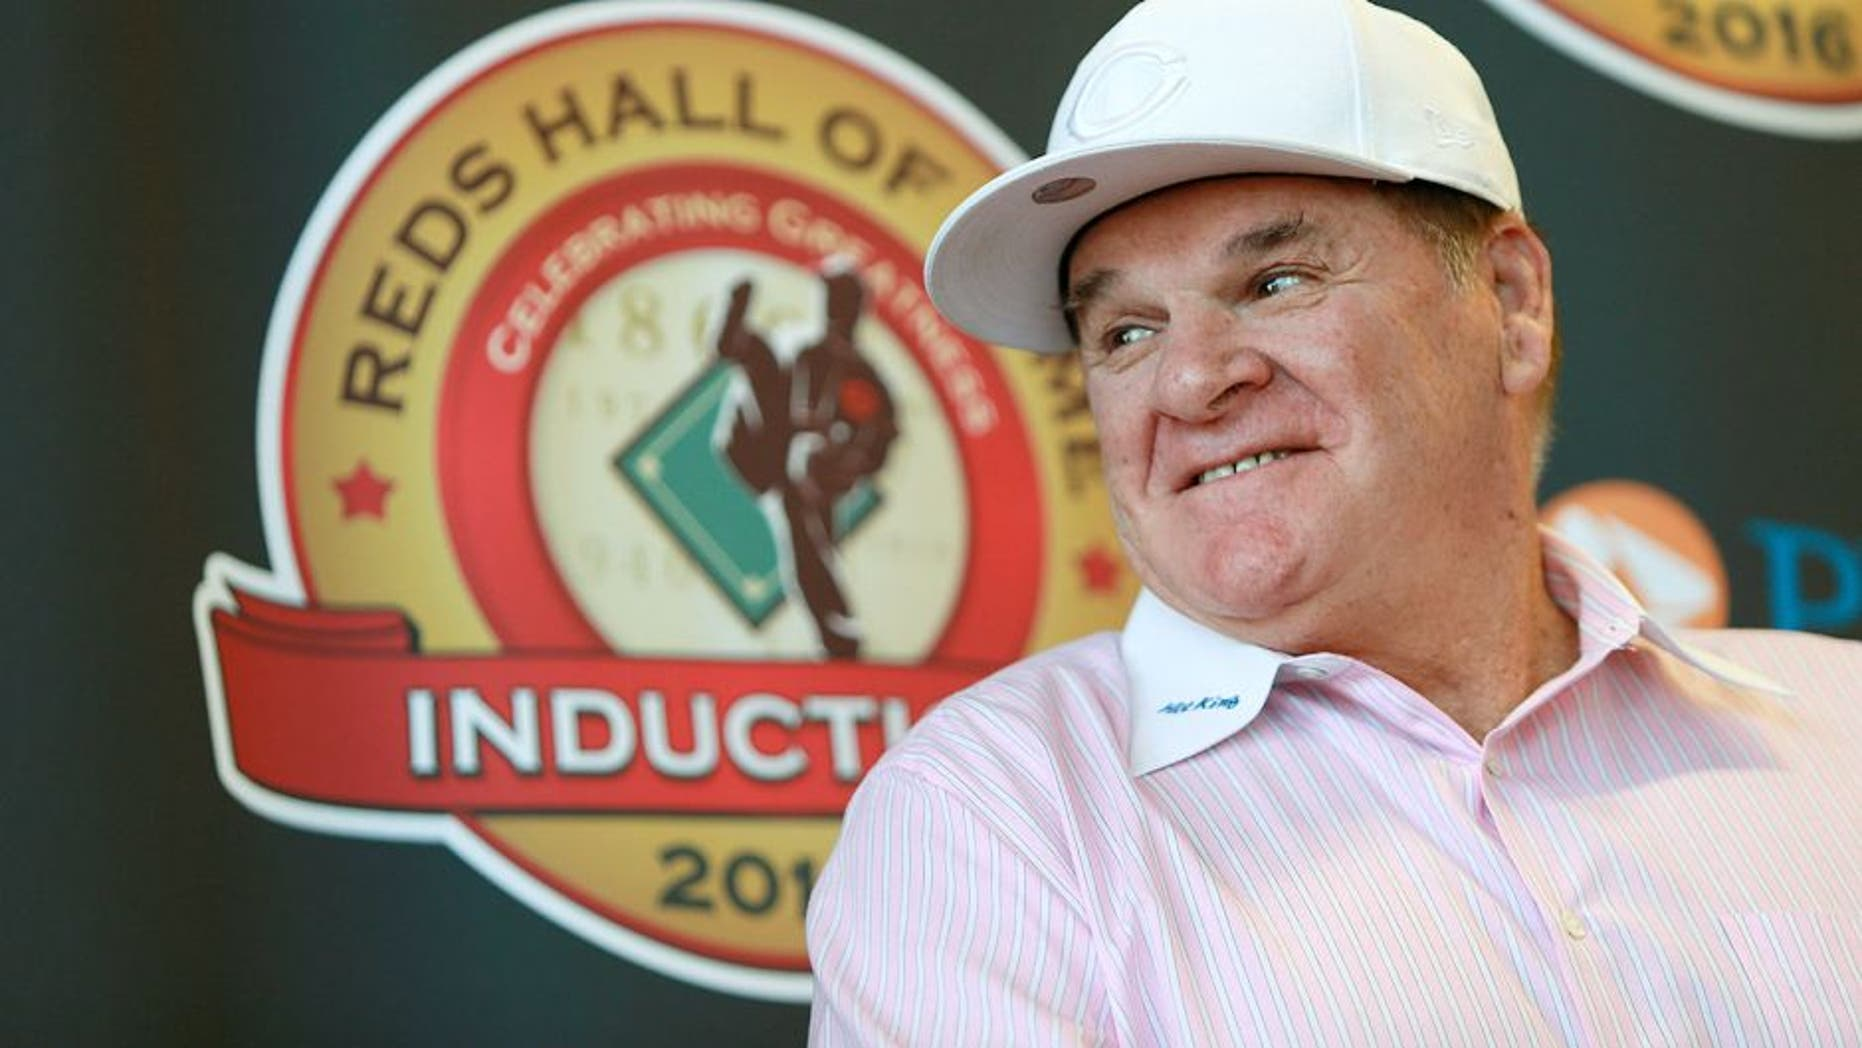 CINCINNATI, OH - JANUARY 19: Former Cincinnati Reds player Pete Rose, attends a press conference at the Champions Club at Great American Ball Park on January 19, 2016 in Cincinnati, Ohio. Rose was introduced as the latest member of the Cincinnati Reds Hall of Fame and will be inducted at a game in June. (Photo by Mark Lyons/Getty Images)